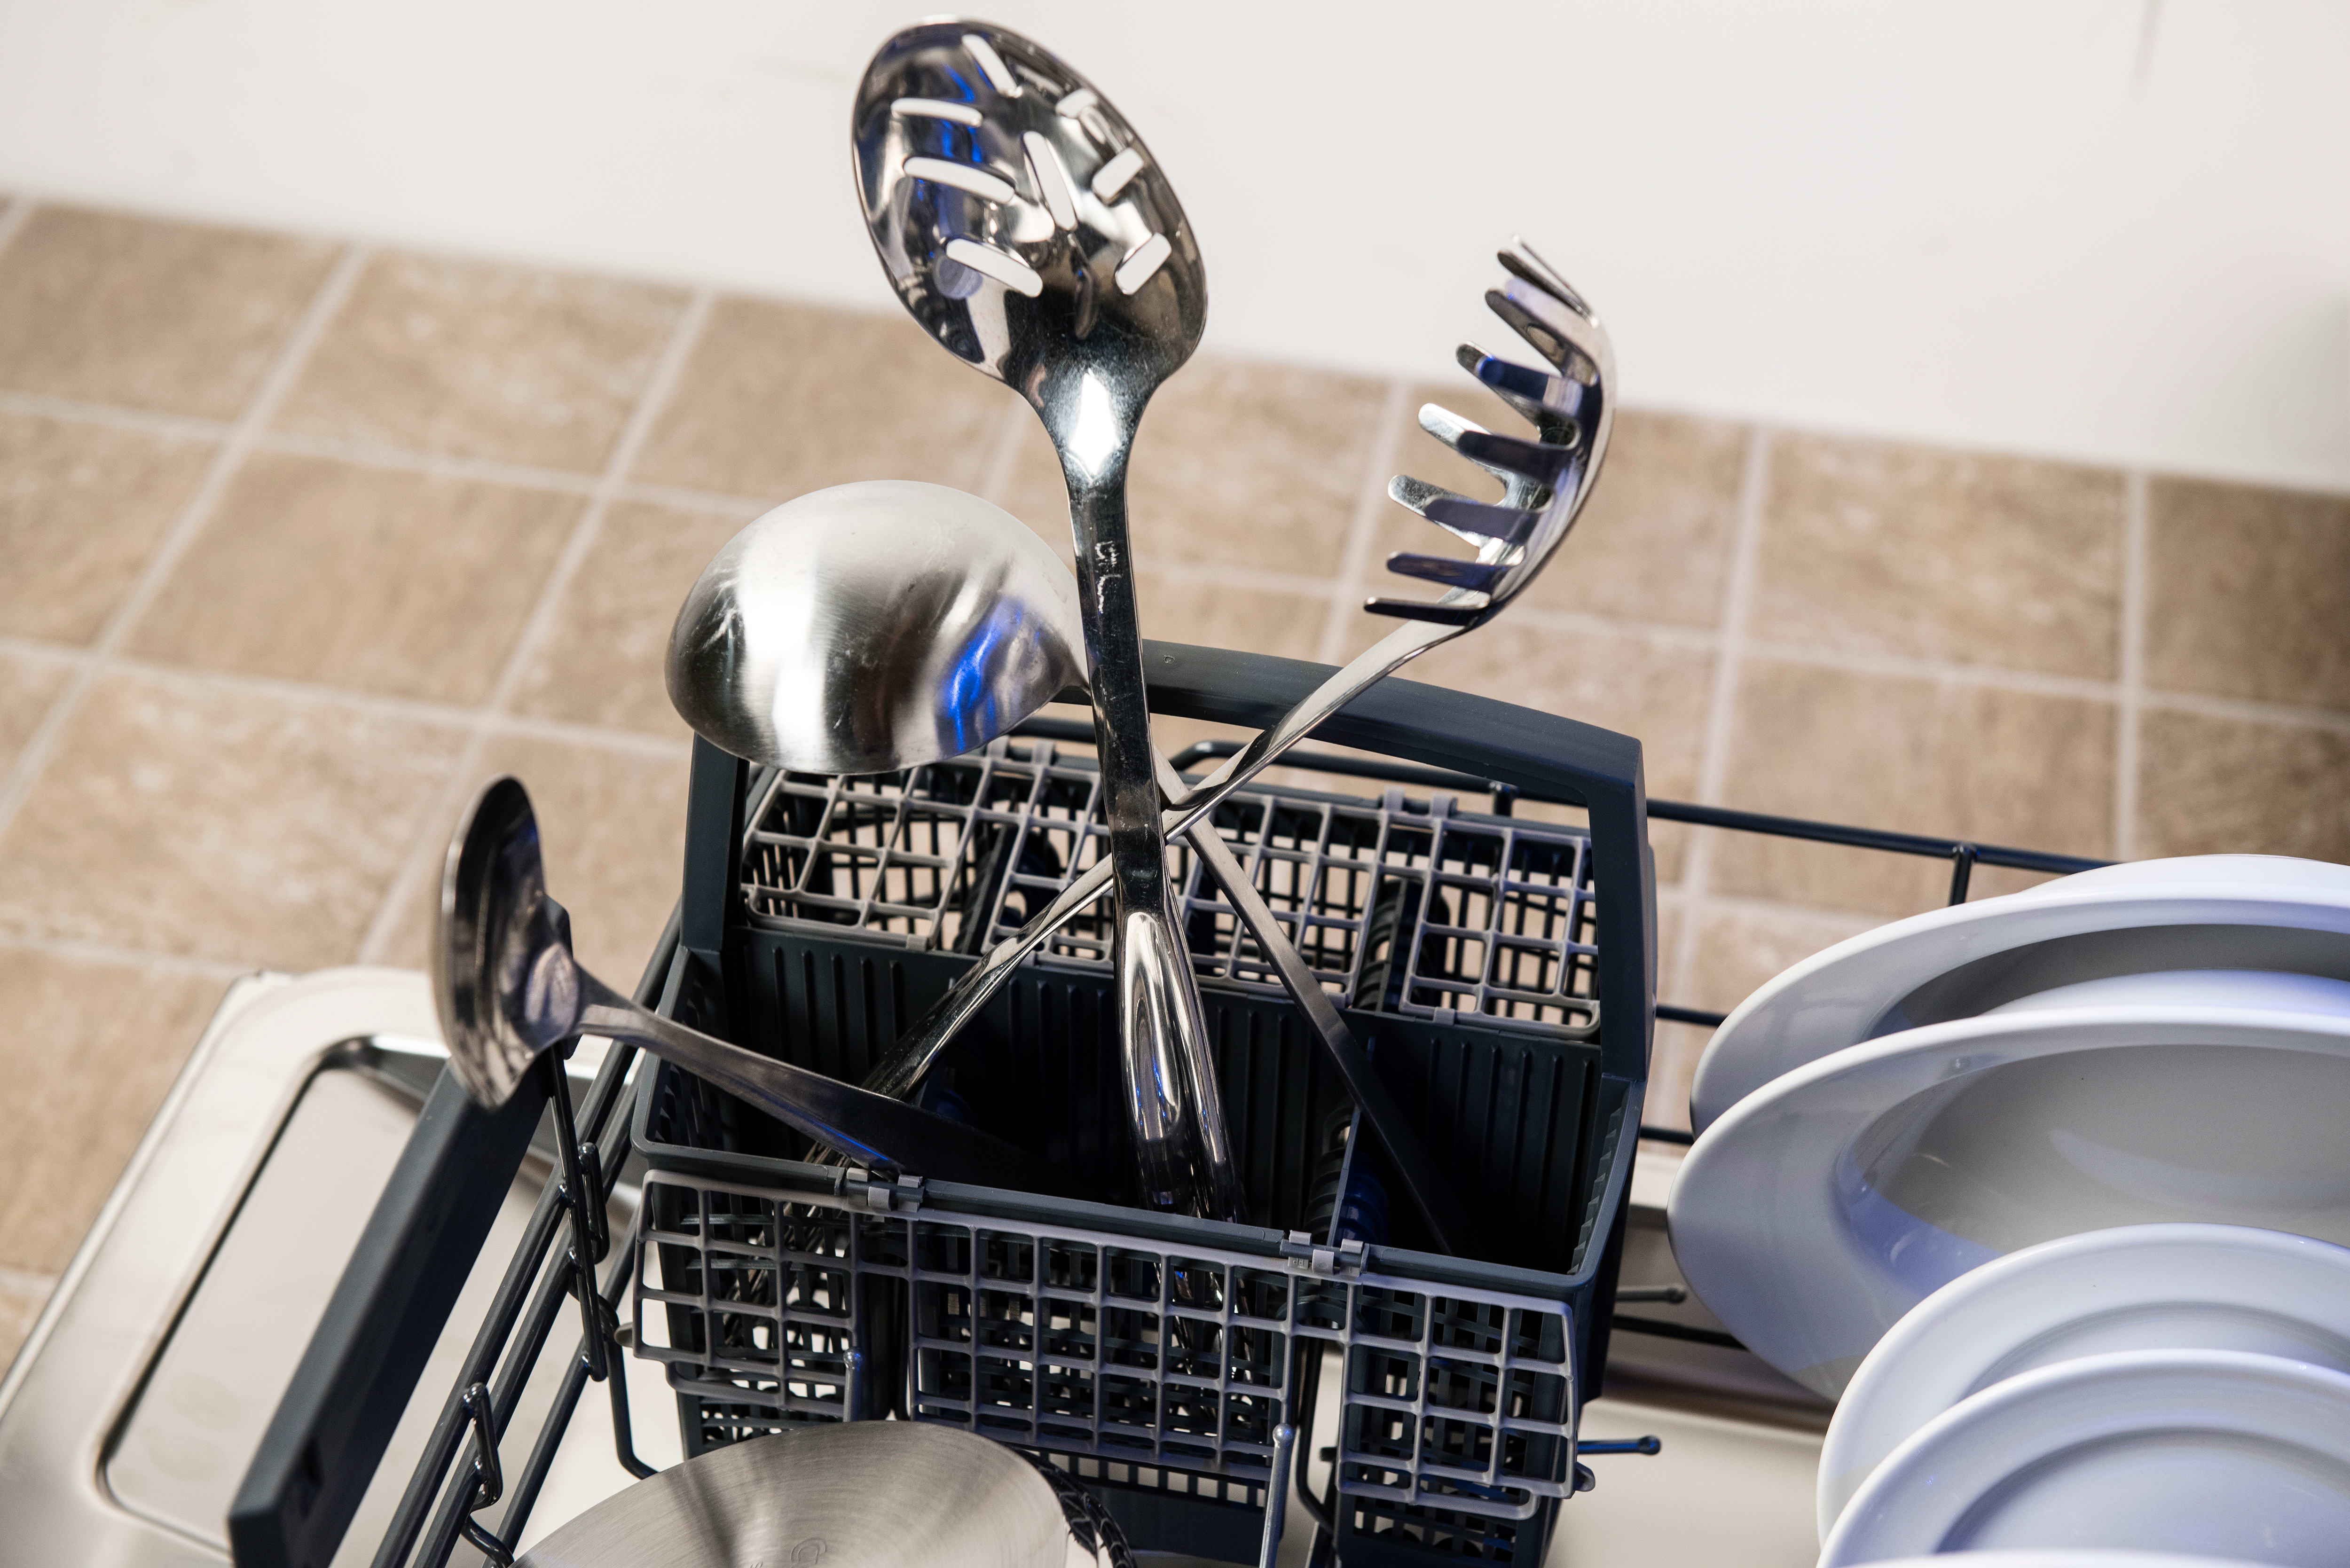 Thermador Sapphire DWHD650JPR cutlery basket loaded